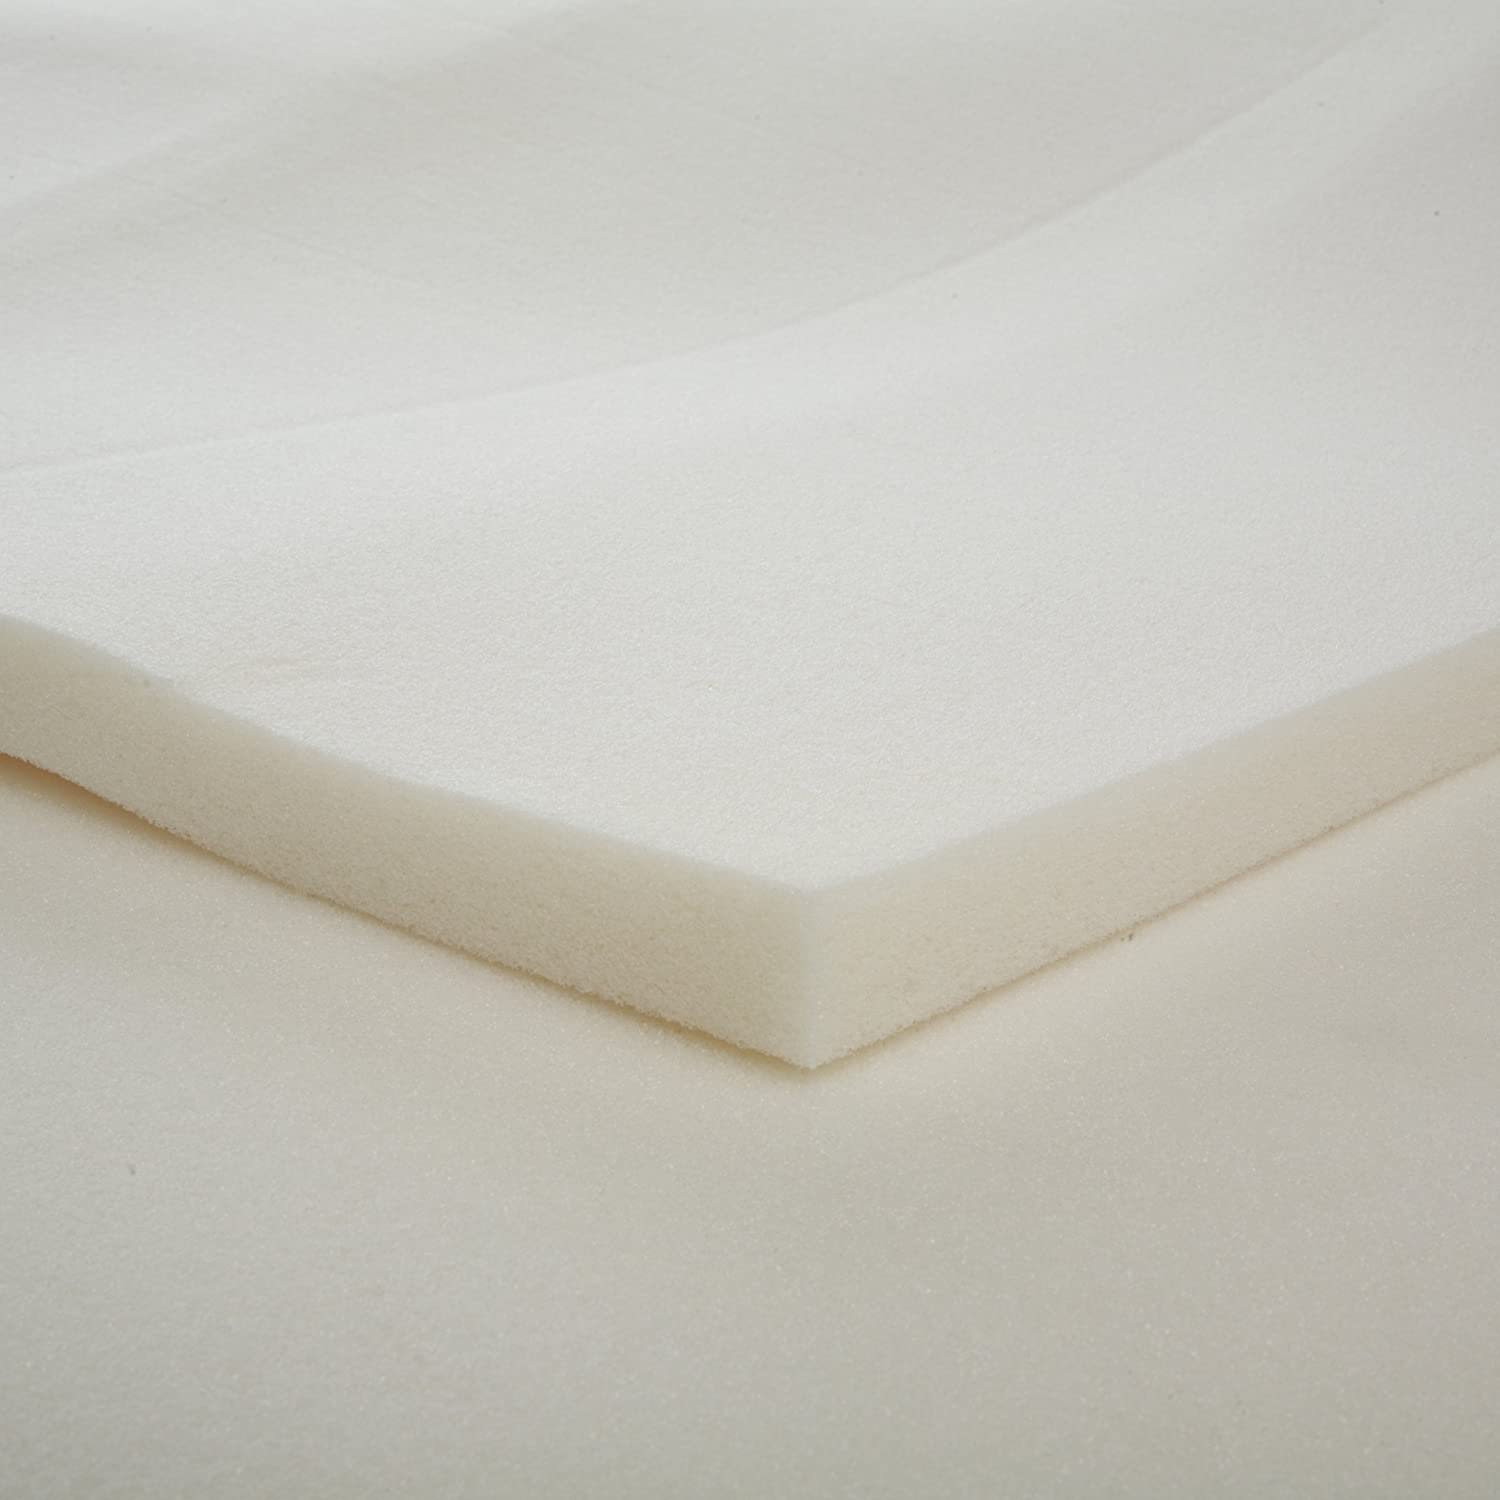 Memory foam bed bedding mattress topper pad padding support comfort 1 inch thick Where to buy mattress foam